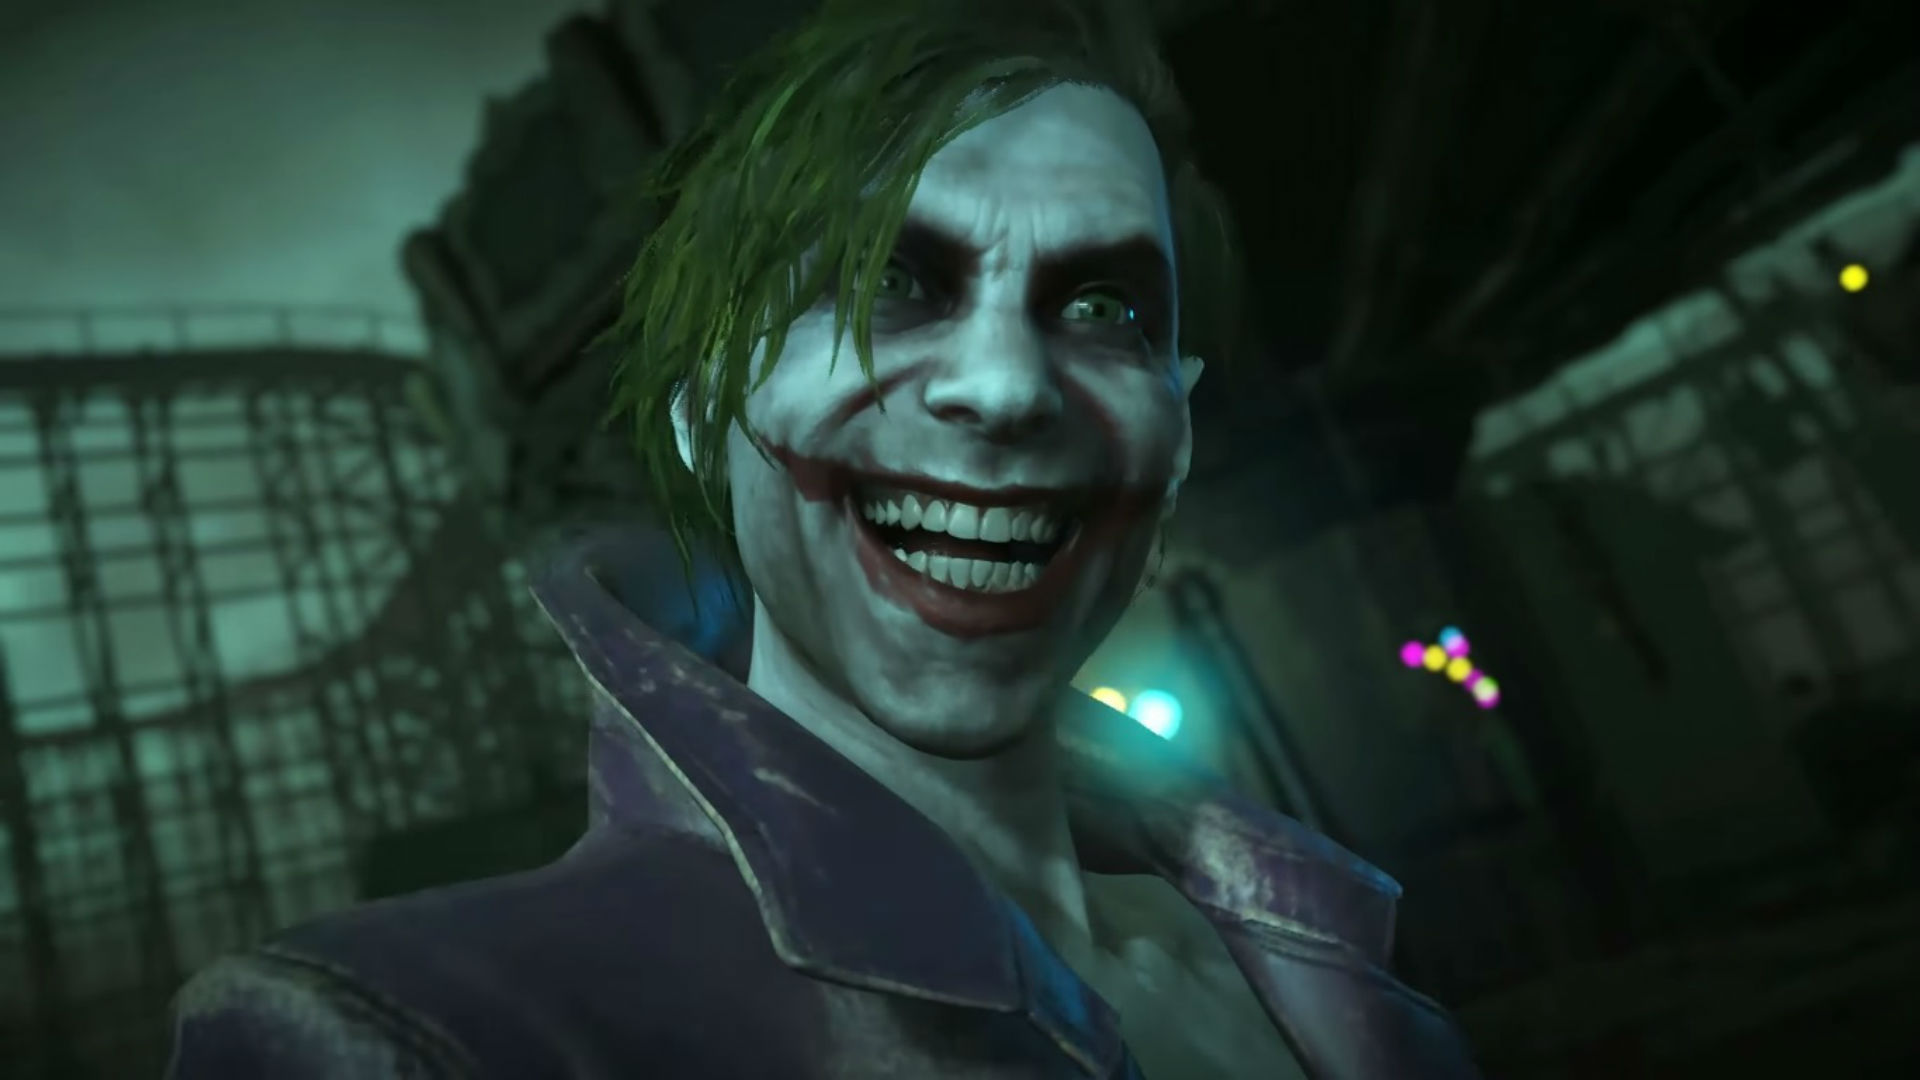 Joker Puts A Smile On That Face In Newest Injustice 2 Gameplay Trailer